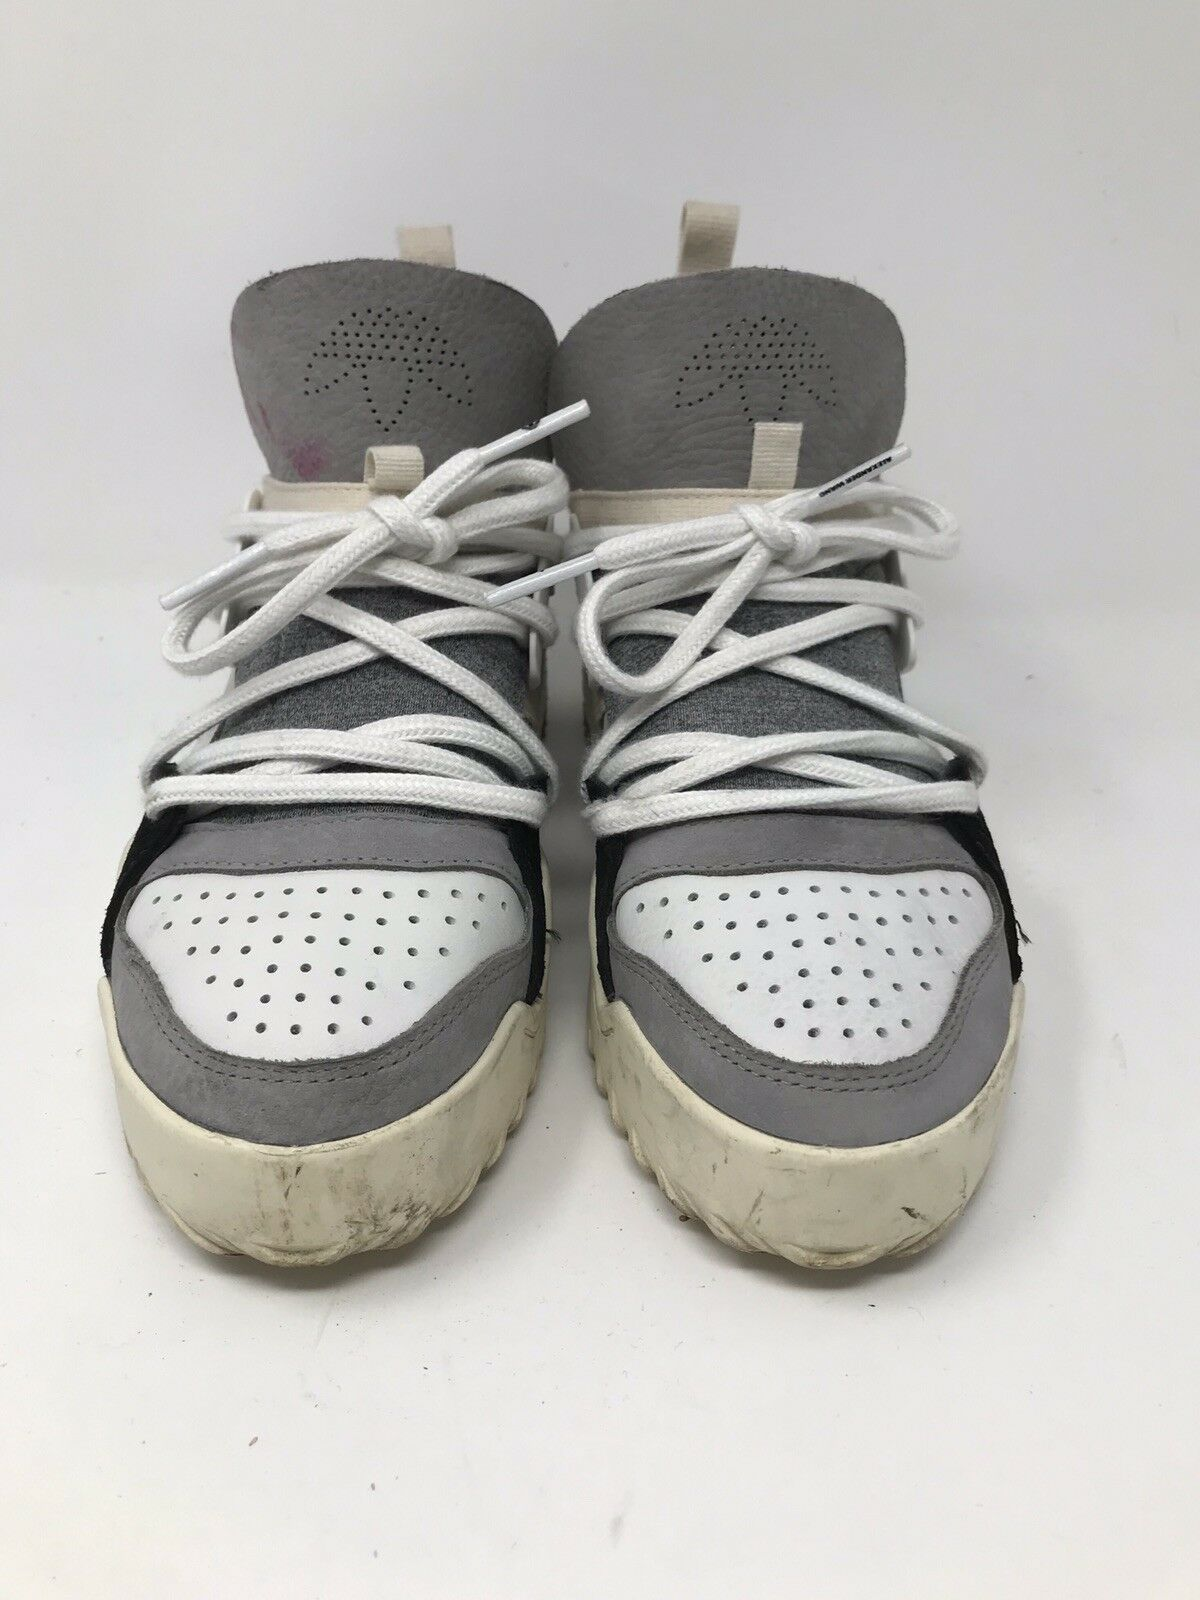 ALEXANDER WANG ADIDAS AW BBALL BOOST WHITE CM7824 SIZE 4.5 USED